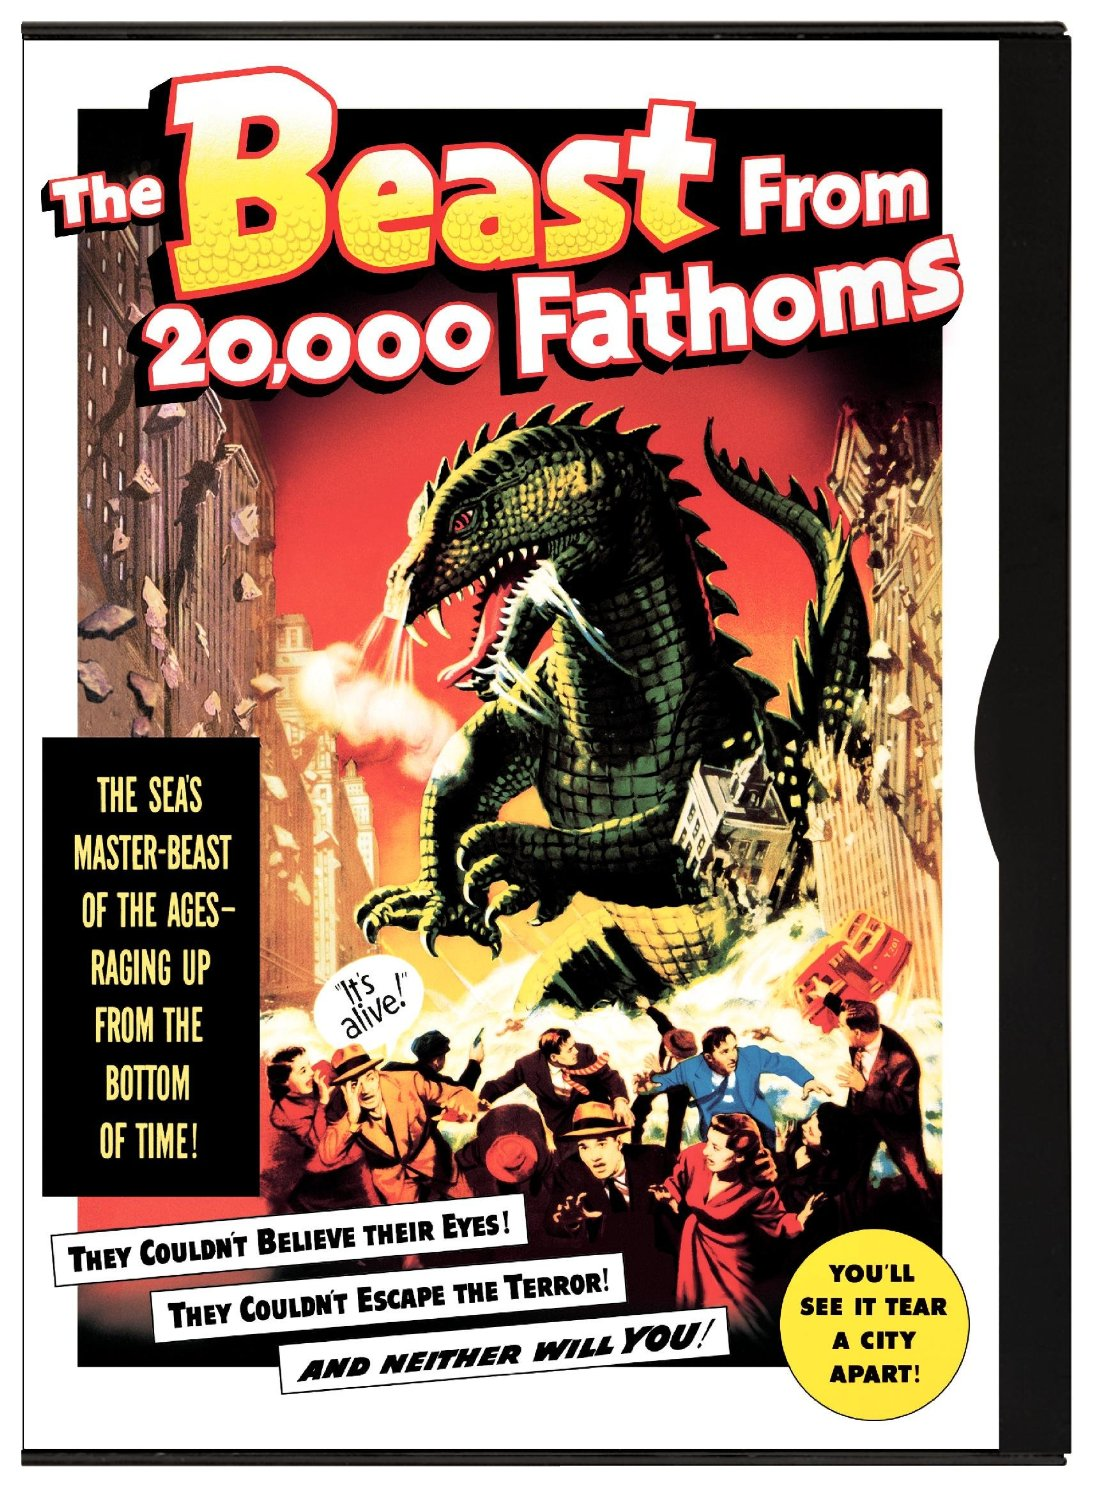 The Beast from 20,000 Fathoms (1953) starring Paul Hubschmid, Paula Raymond, Cecil Kellaway